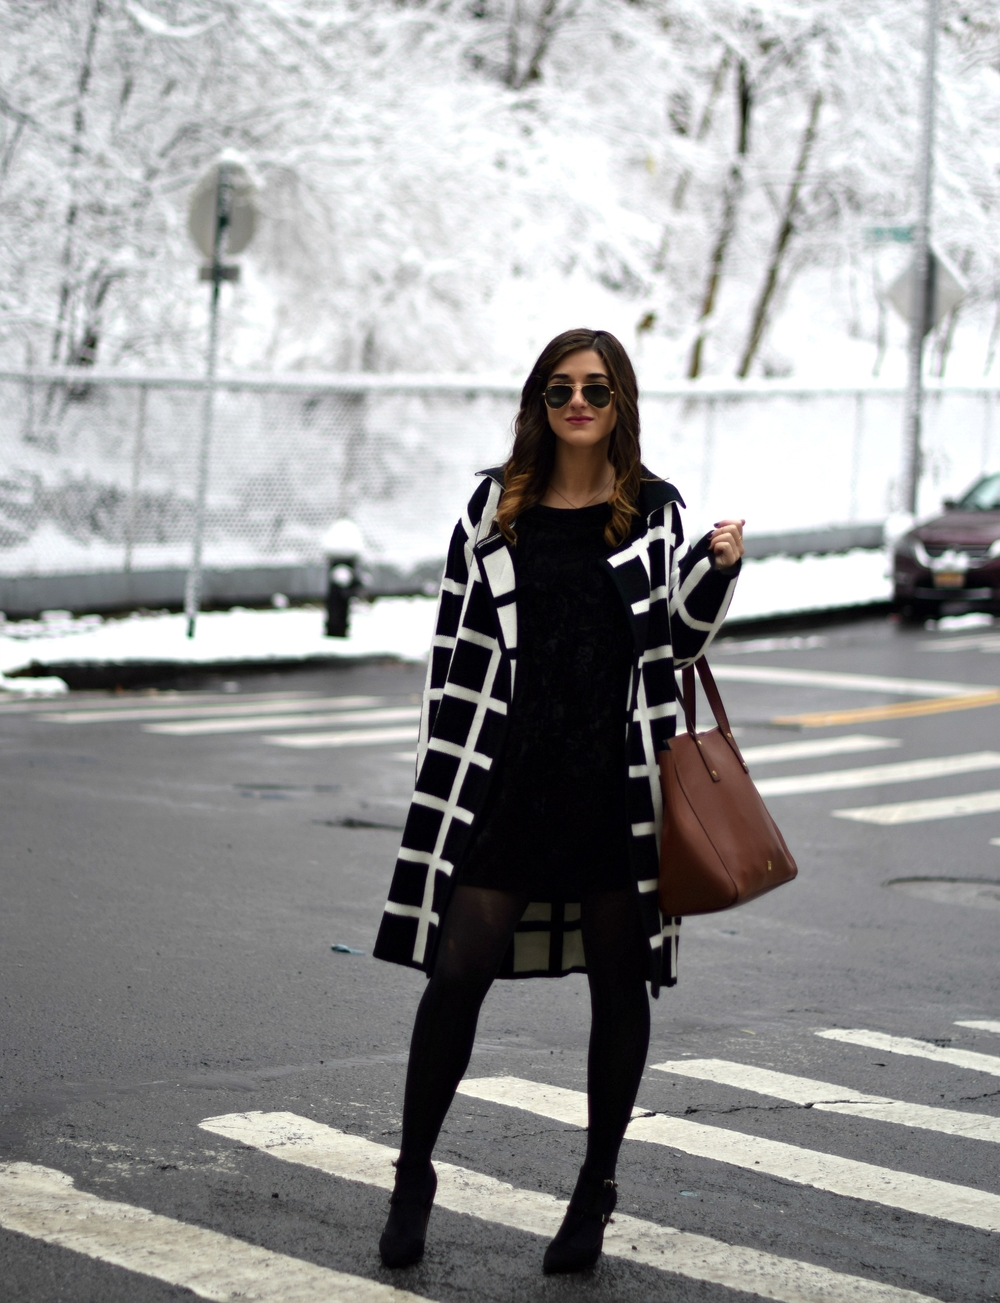 Black and White Windowpane Sweater Trescool Louboutins & Love Fashion Blog Esther Santer NYC Street Blogger Winter Wear Shop Cozy Layers Zara Black Heels Ivanka Trump Soho Tote Bag Velvet Dress Outfit Inspo OOTD Model Beauty Hair Sunglasses Photoshoot.jpg